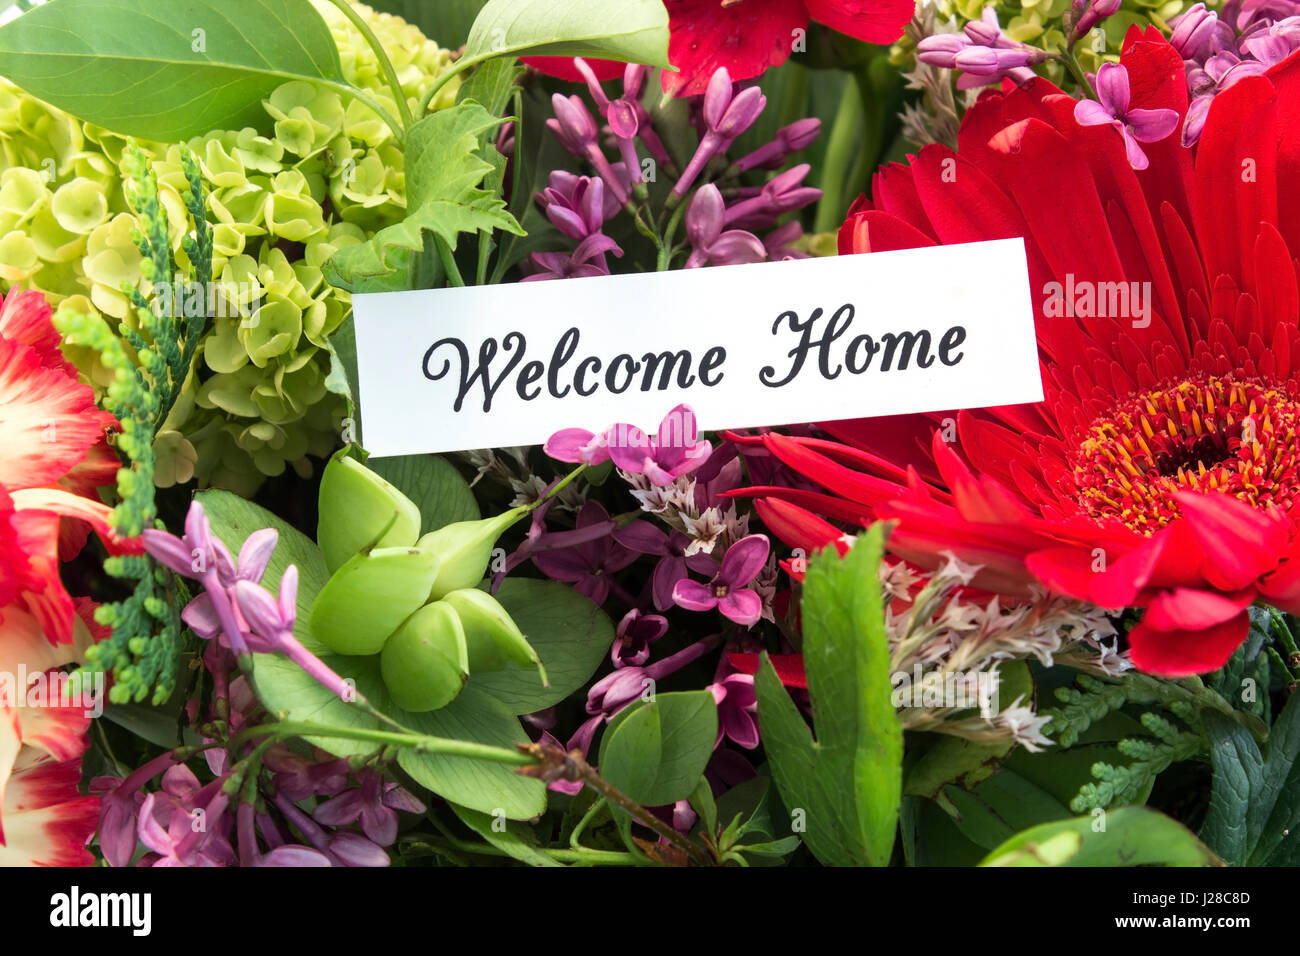 Welcome Home Card with Bouquet of Spring Flowers Stock Photo ...